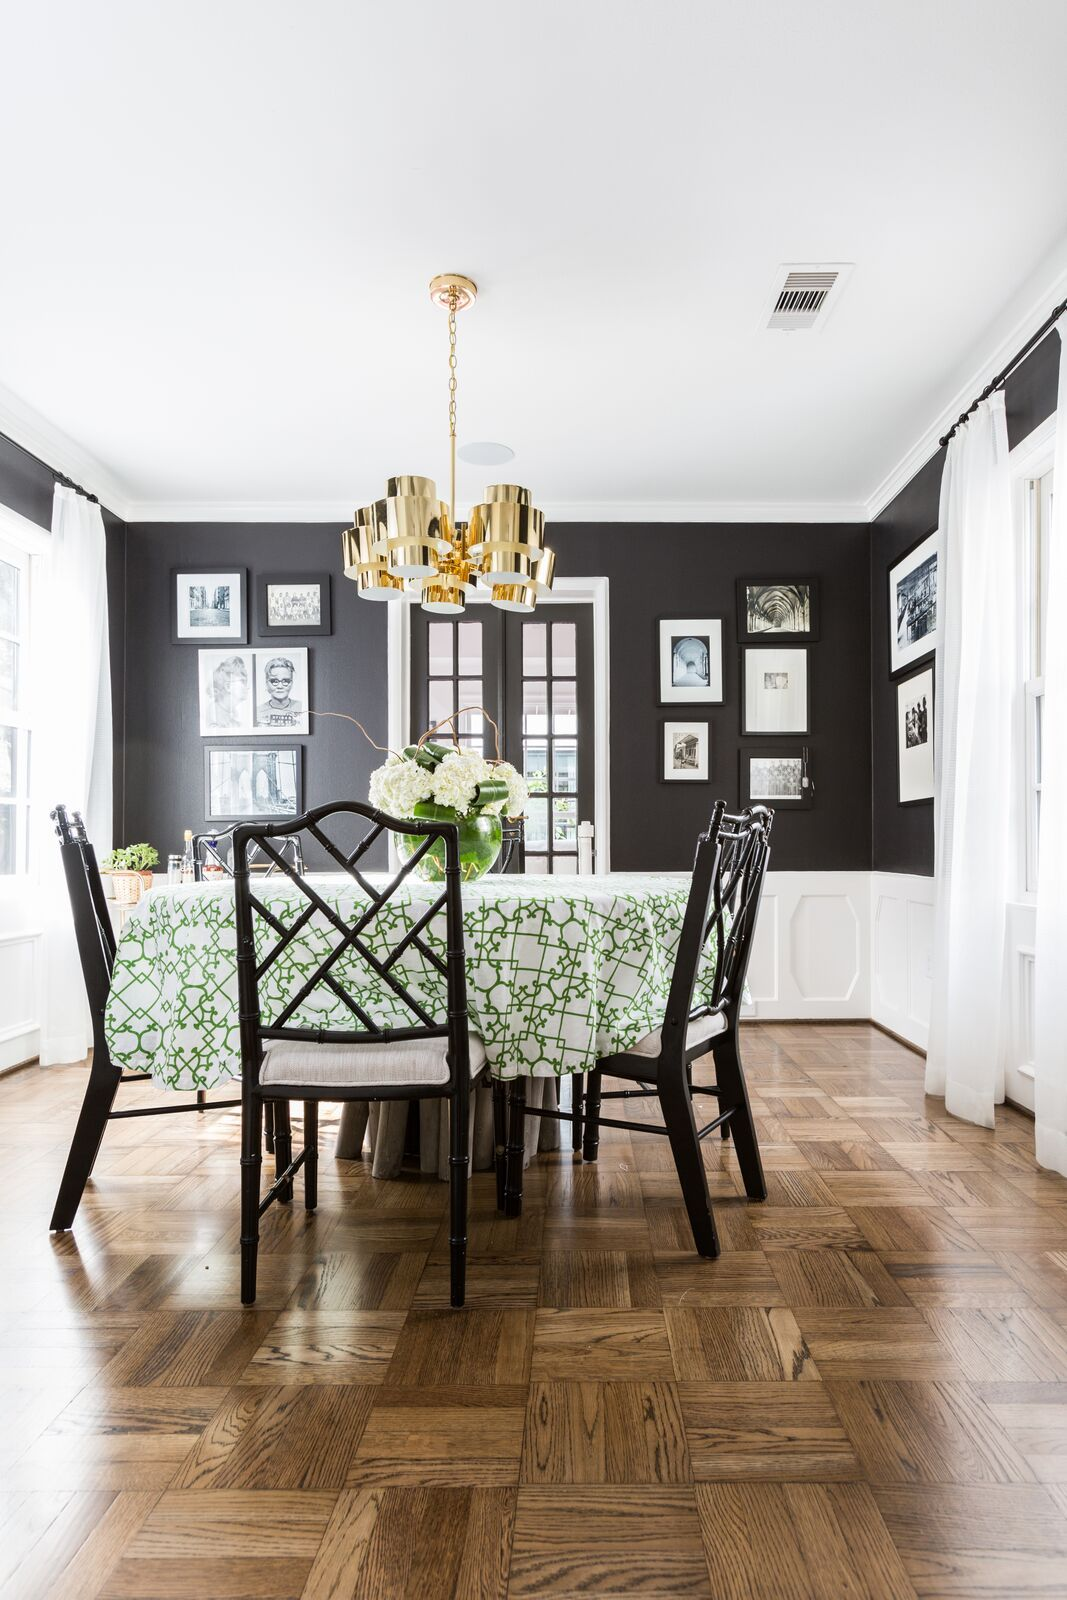 Black Painted Walls Can Be Intimidating Try Braking It Up